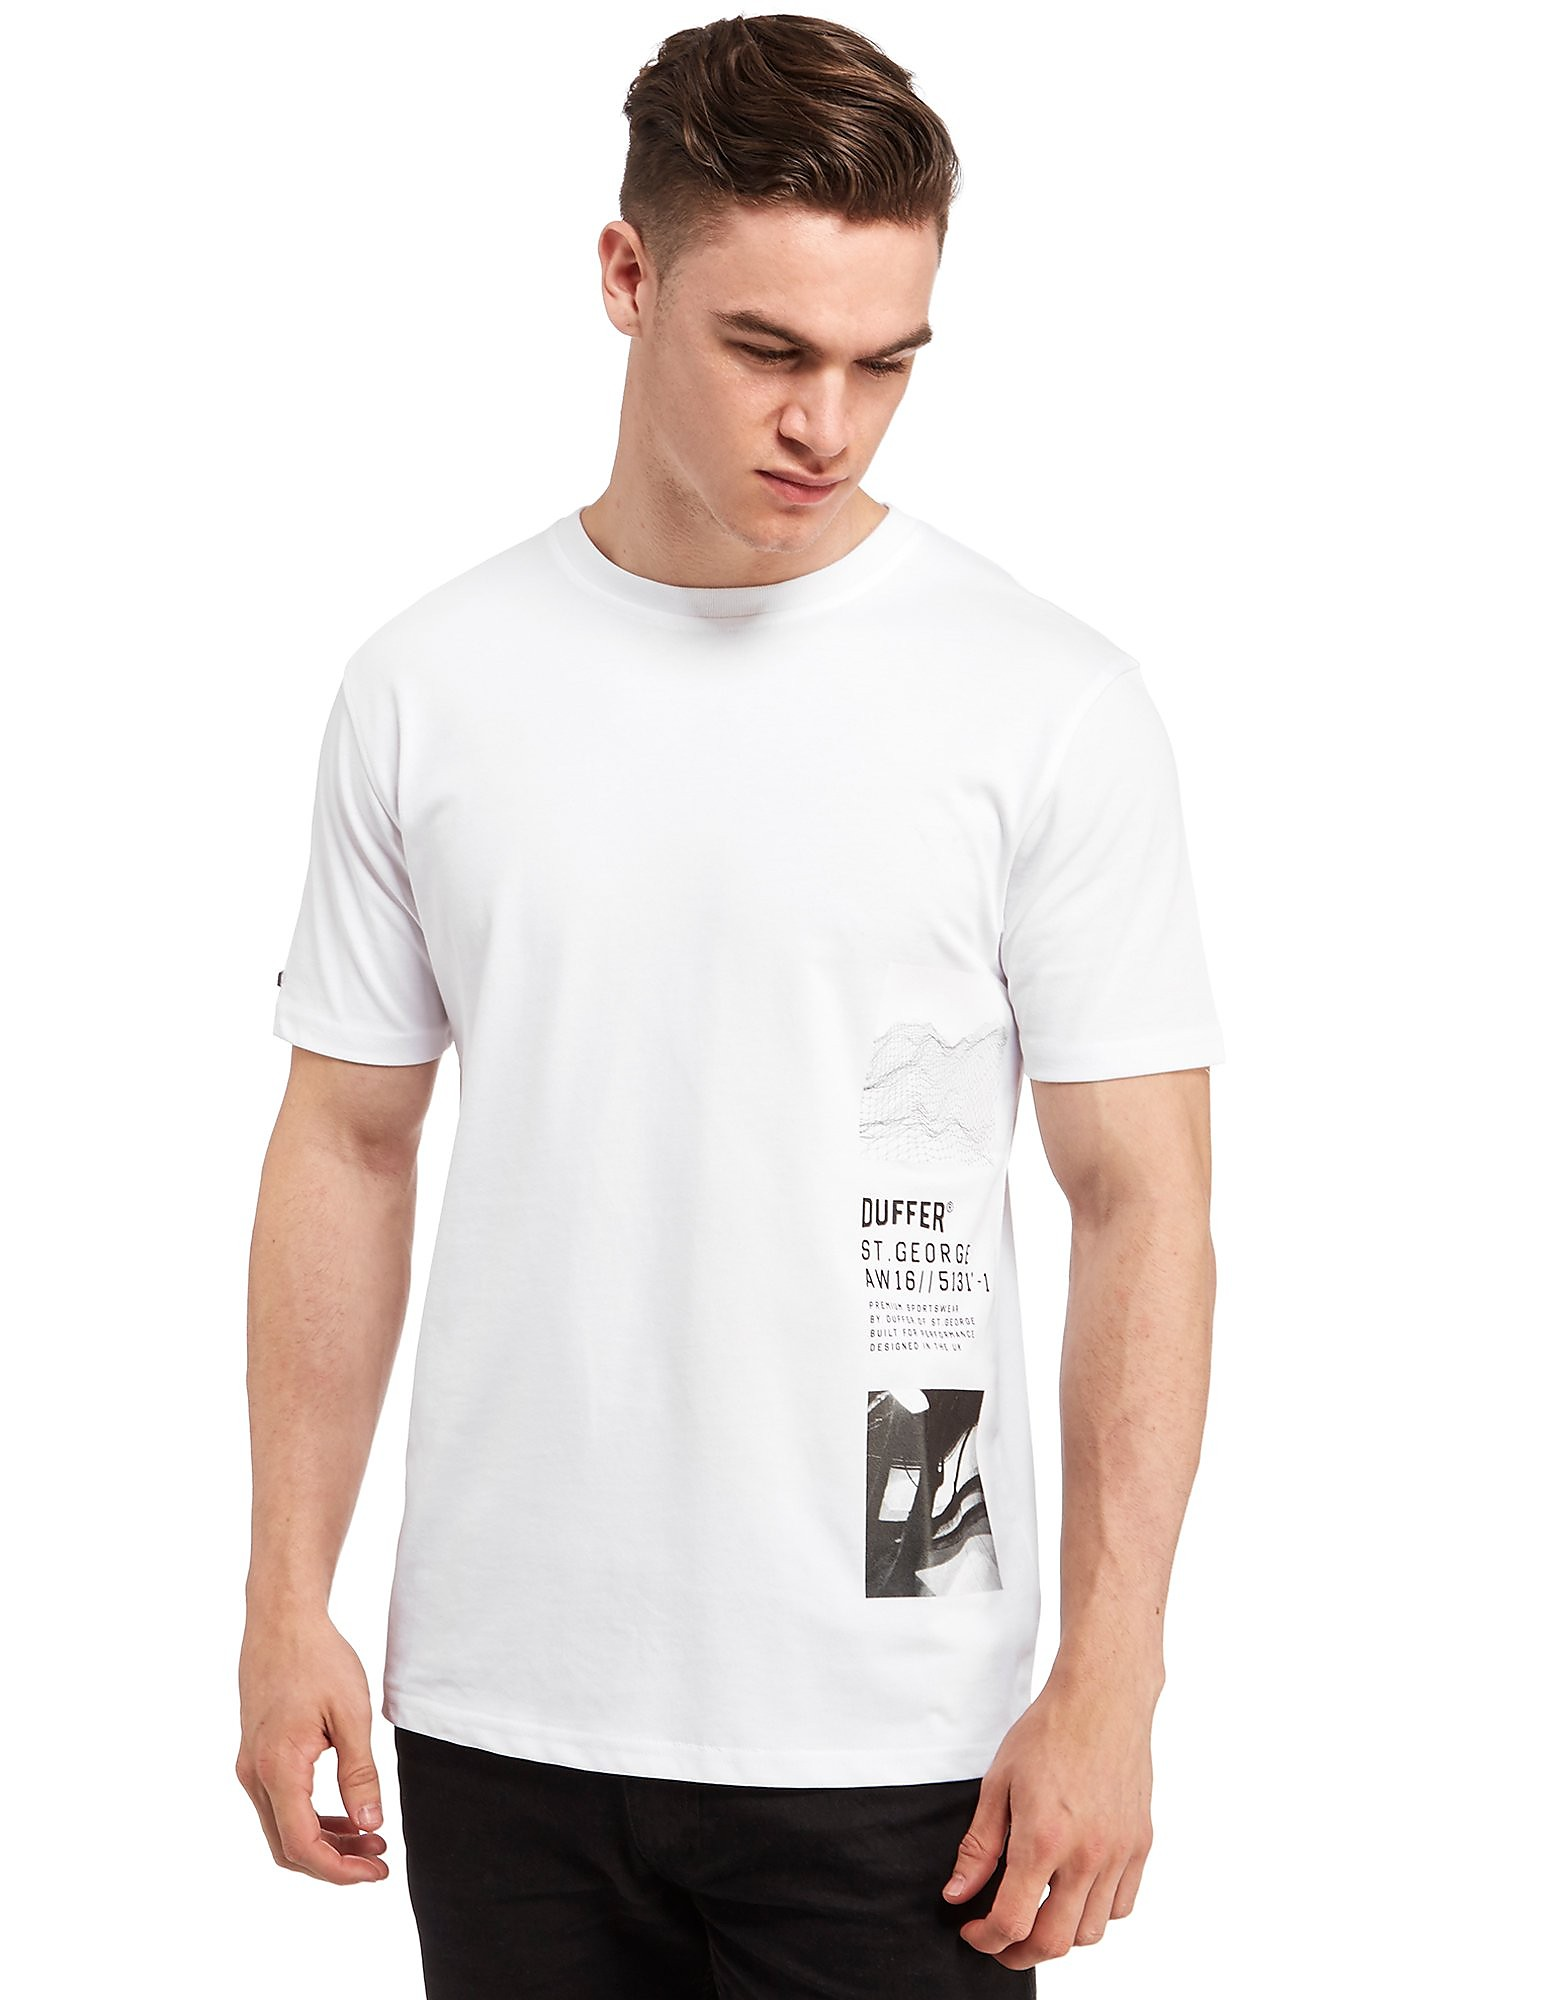 Duffer of St George Black Label Illusion T-Shirt